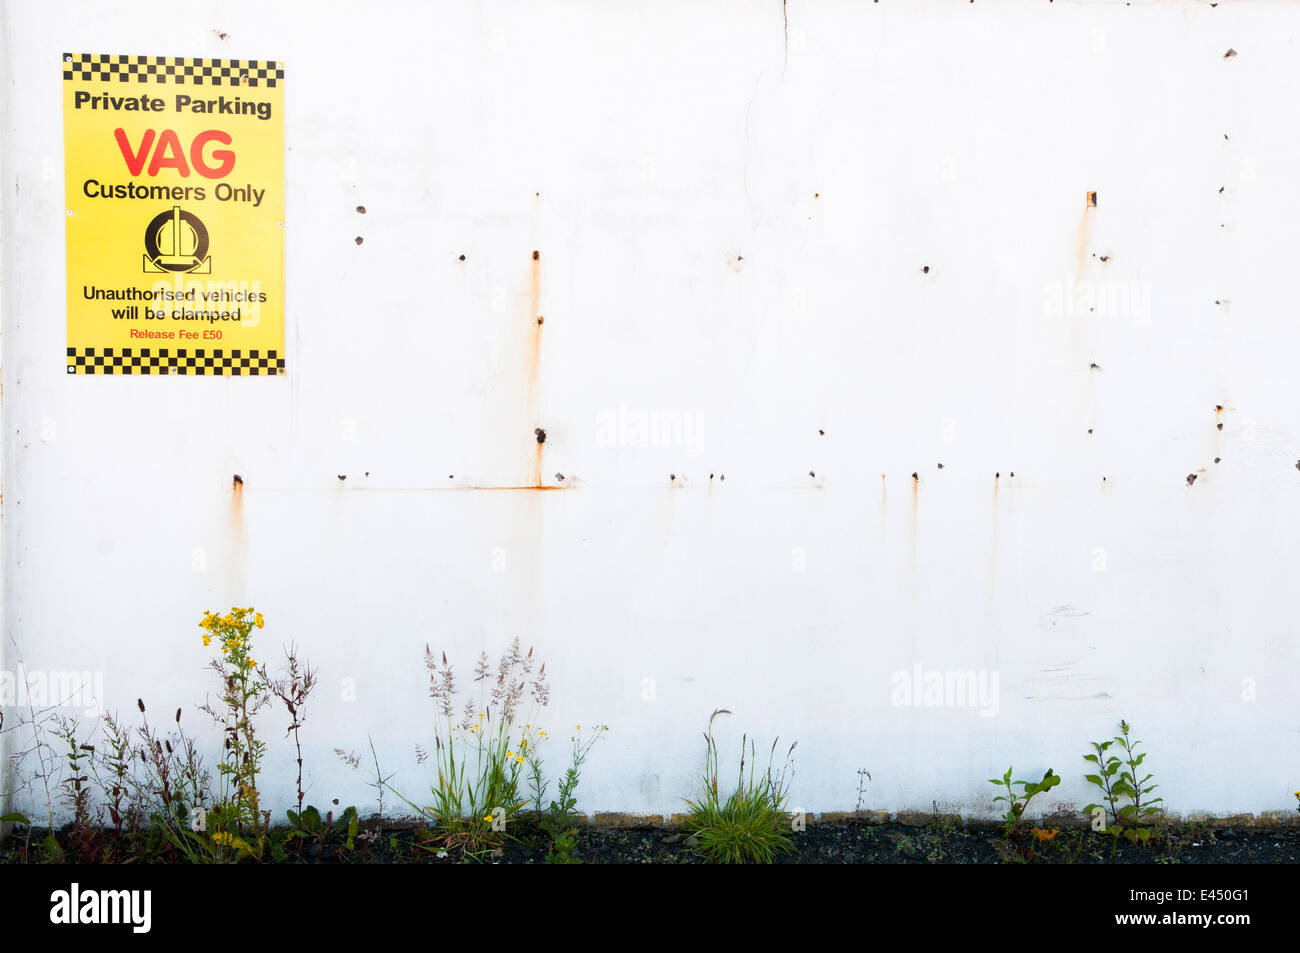 Sign on a wall warning that unauthorised parking will result in vehicles being clamped at a VAG service centre - Stock Image